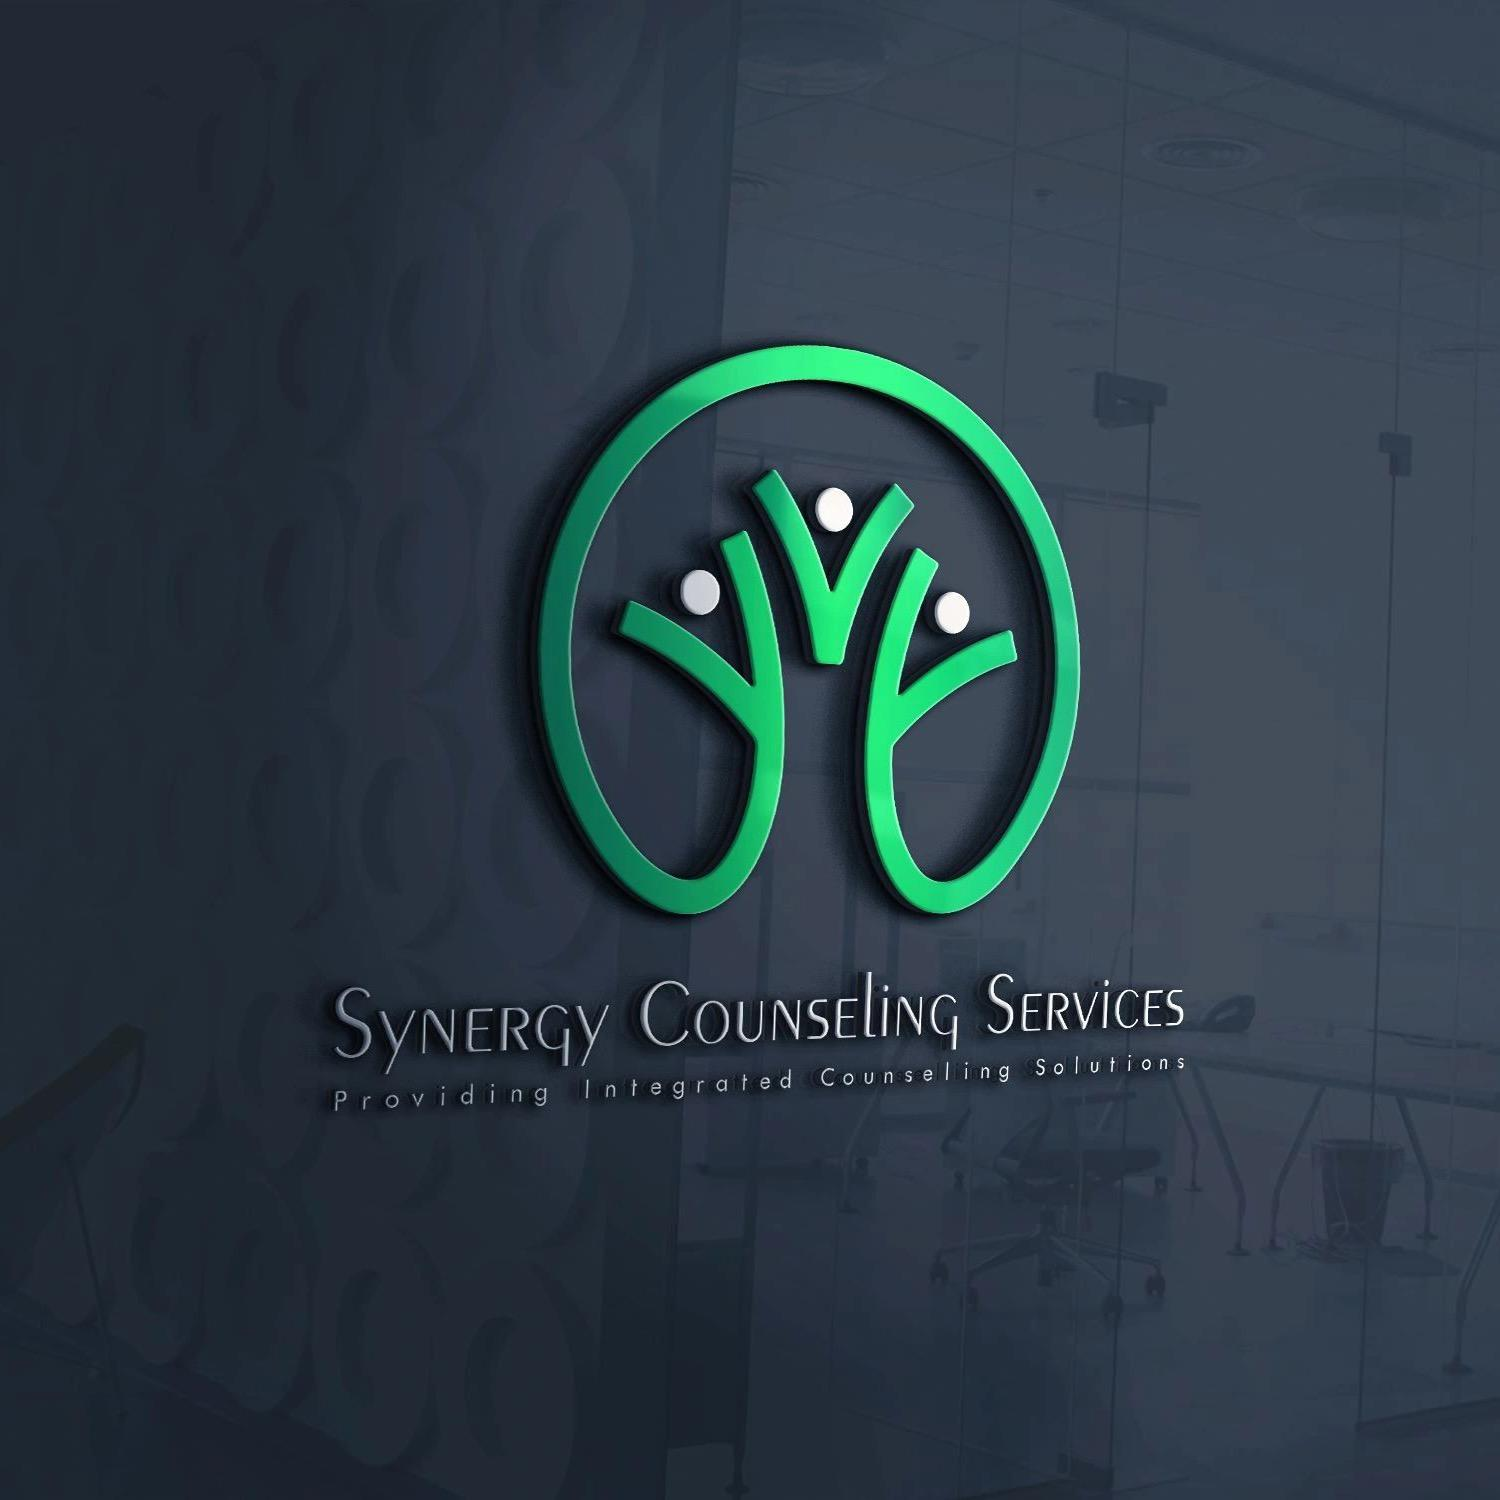 Synergy Counseling Services